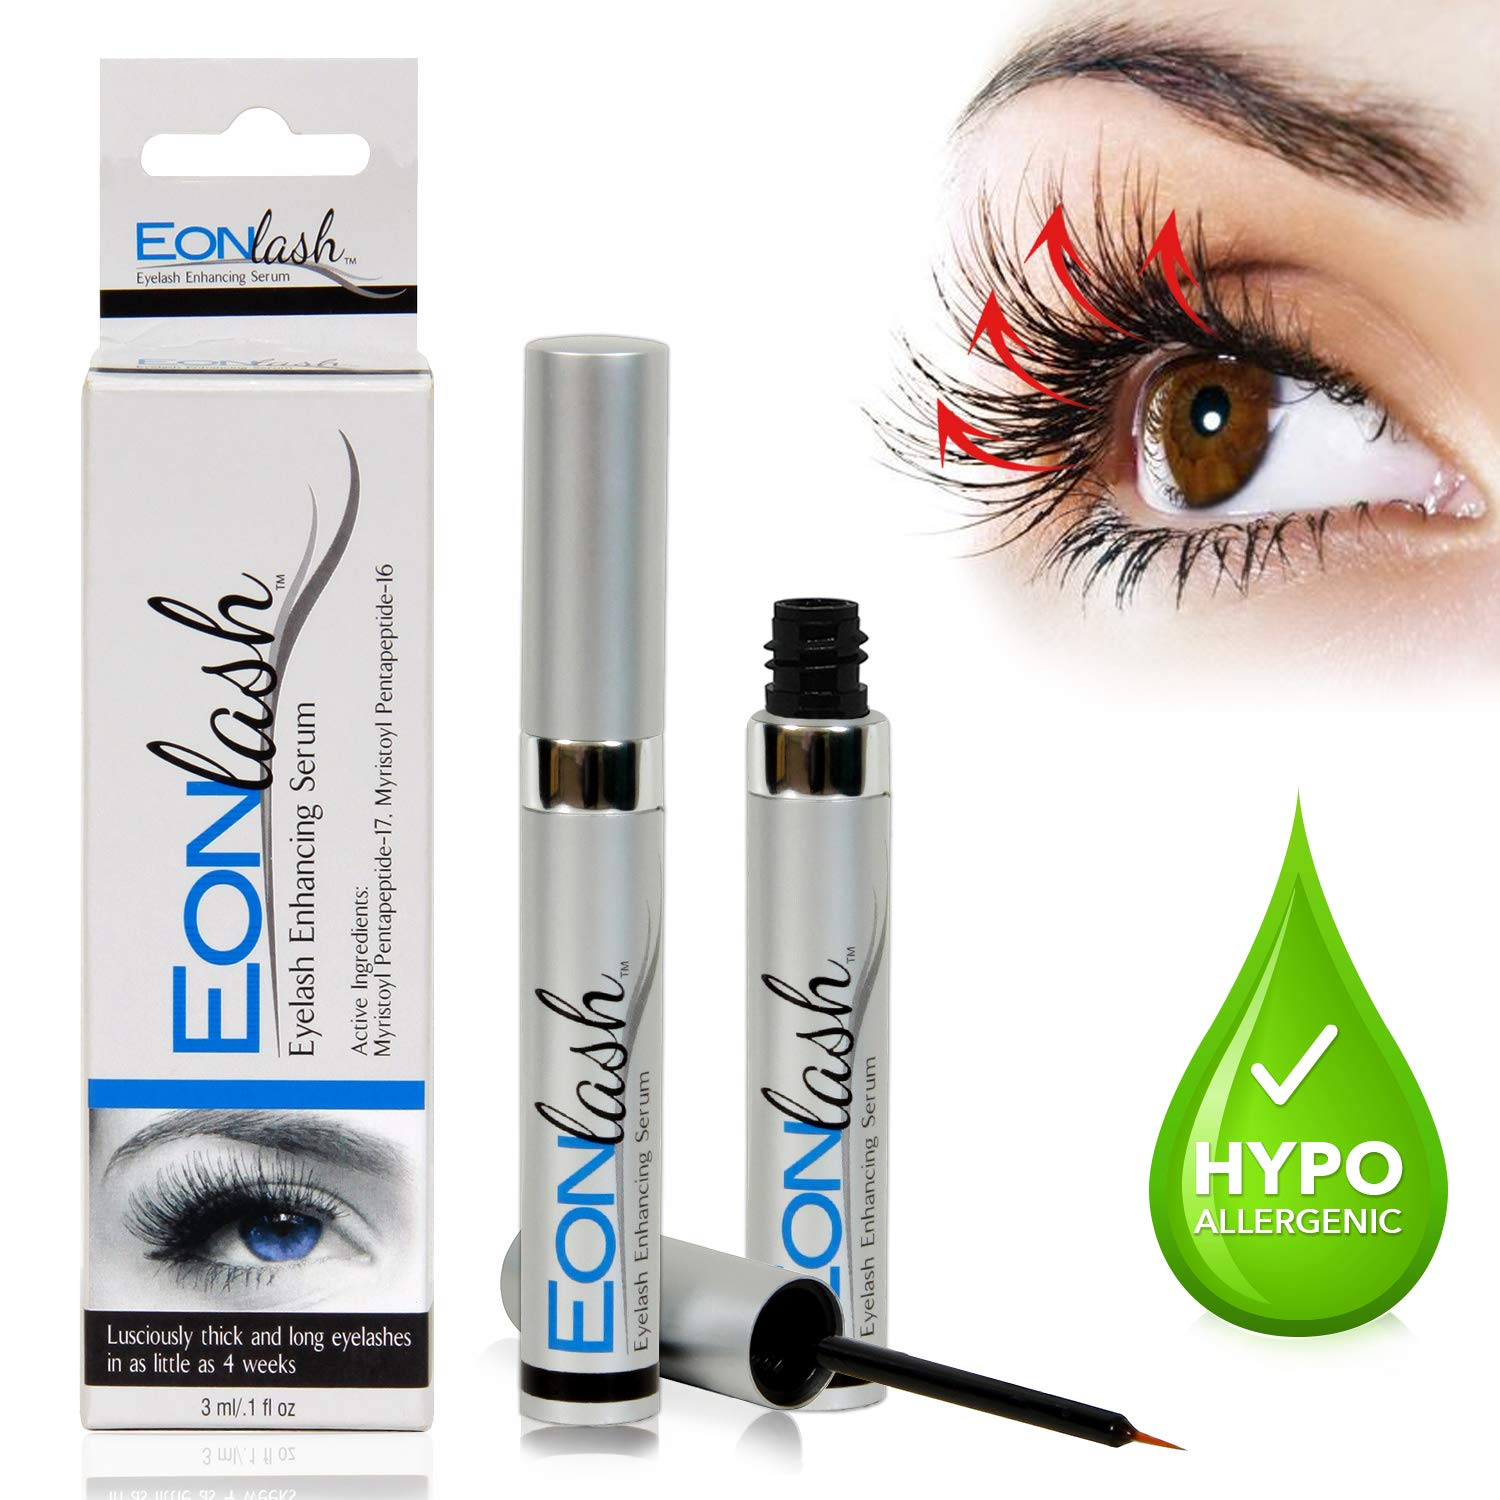 EONLASH Eyebrow & Eyelash Growth Serum - Hypoallergenic and Paraben Free Formula for Longer, Thicker EyeBrows, and Lavish Lashes